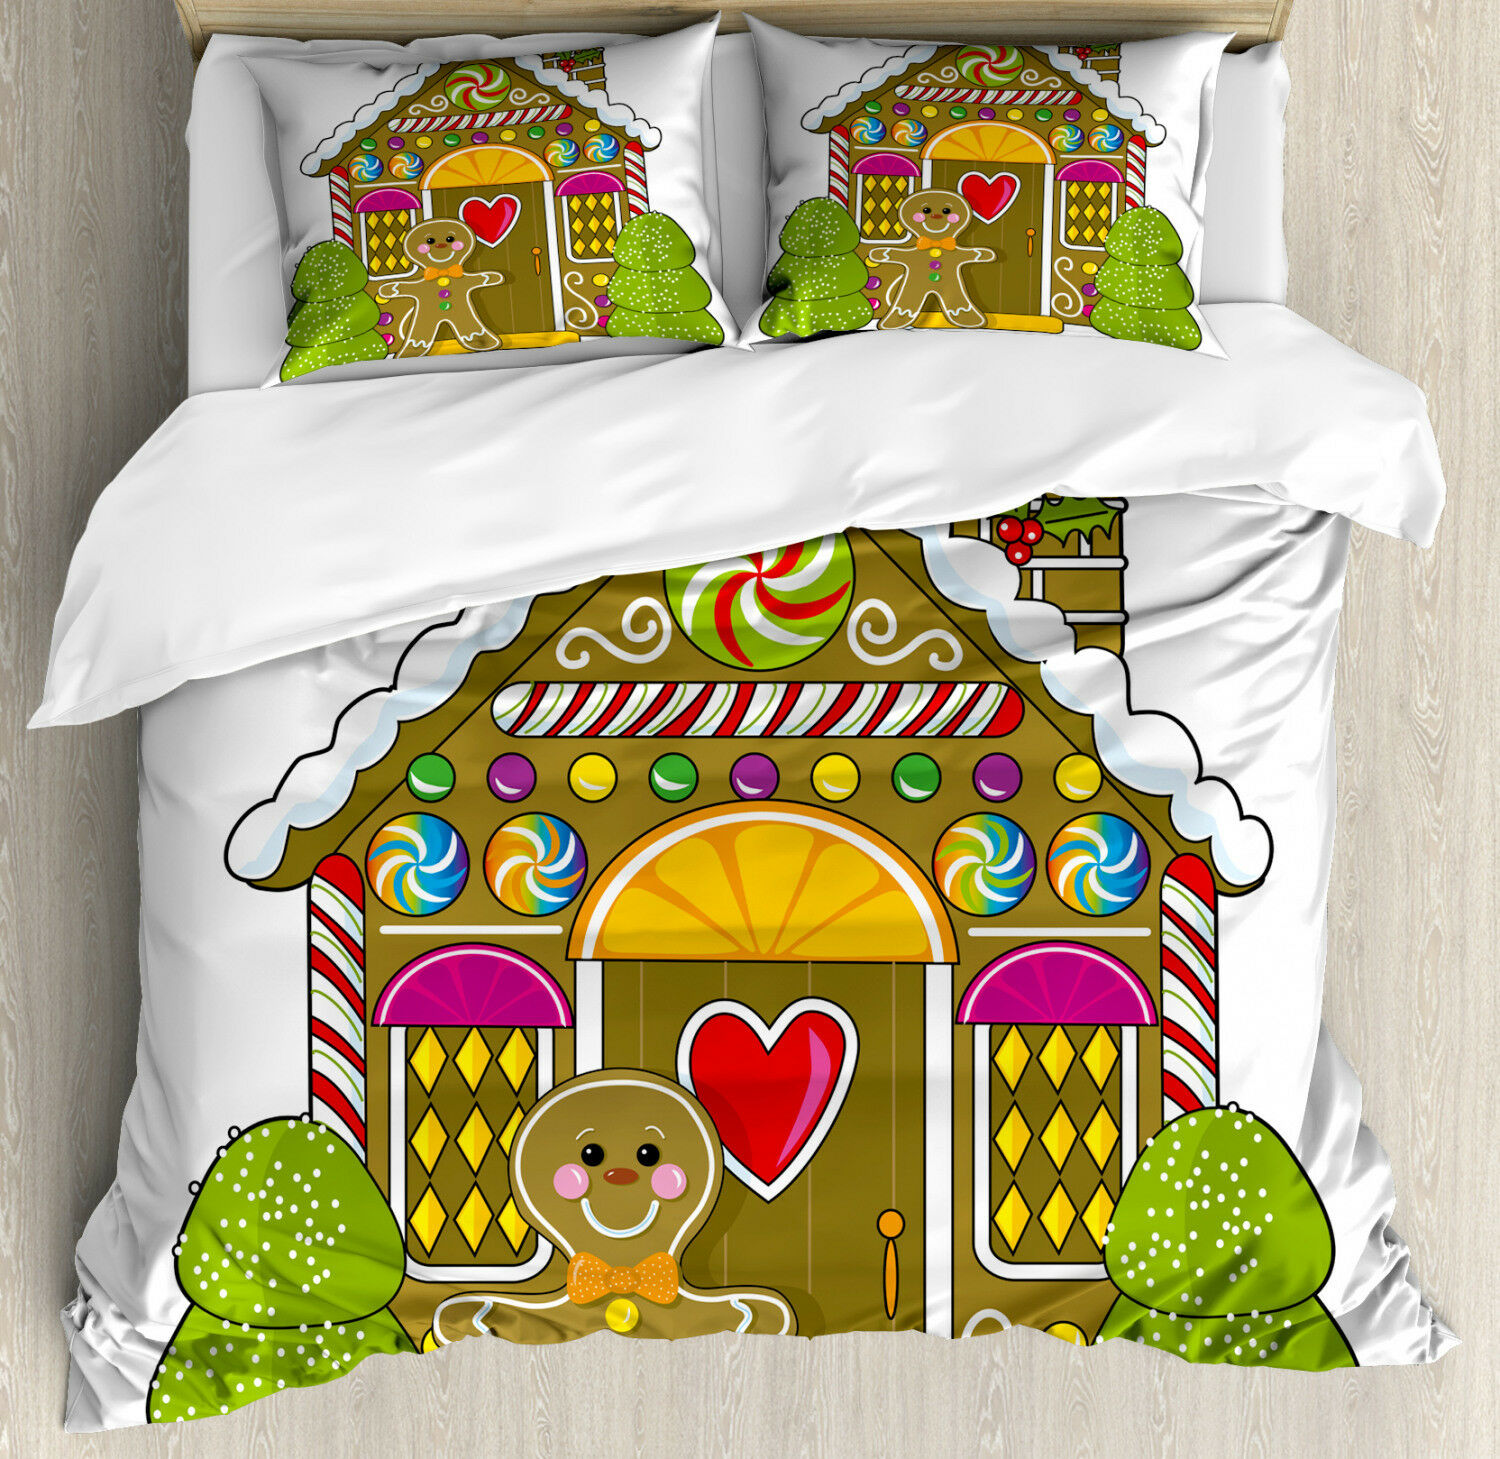 Gingerbread Man Duvet Cover Set with Pillow Shams Candy House Print